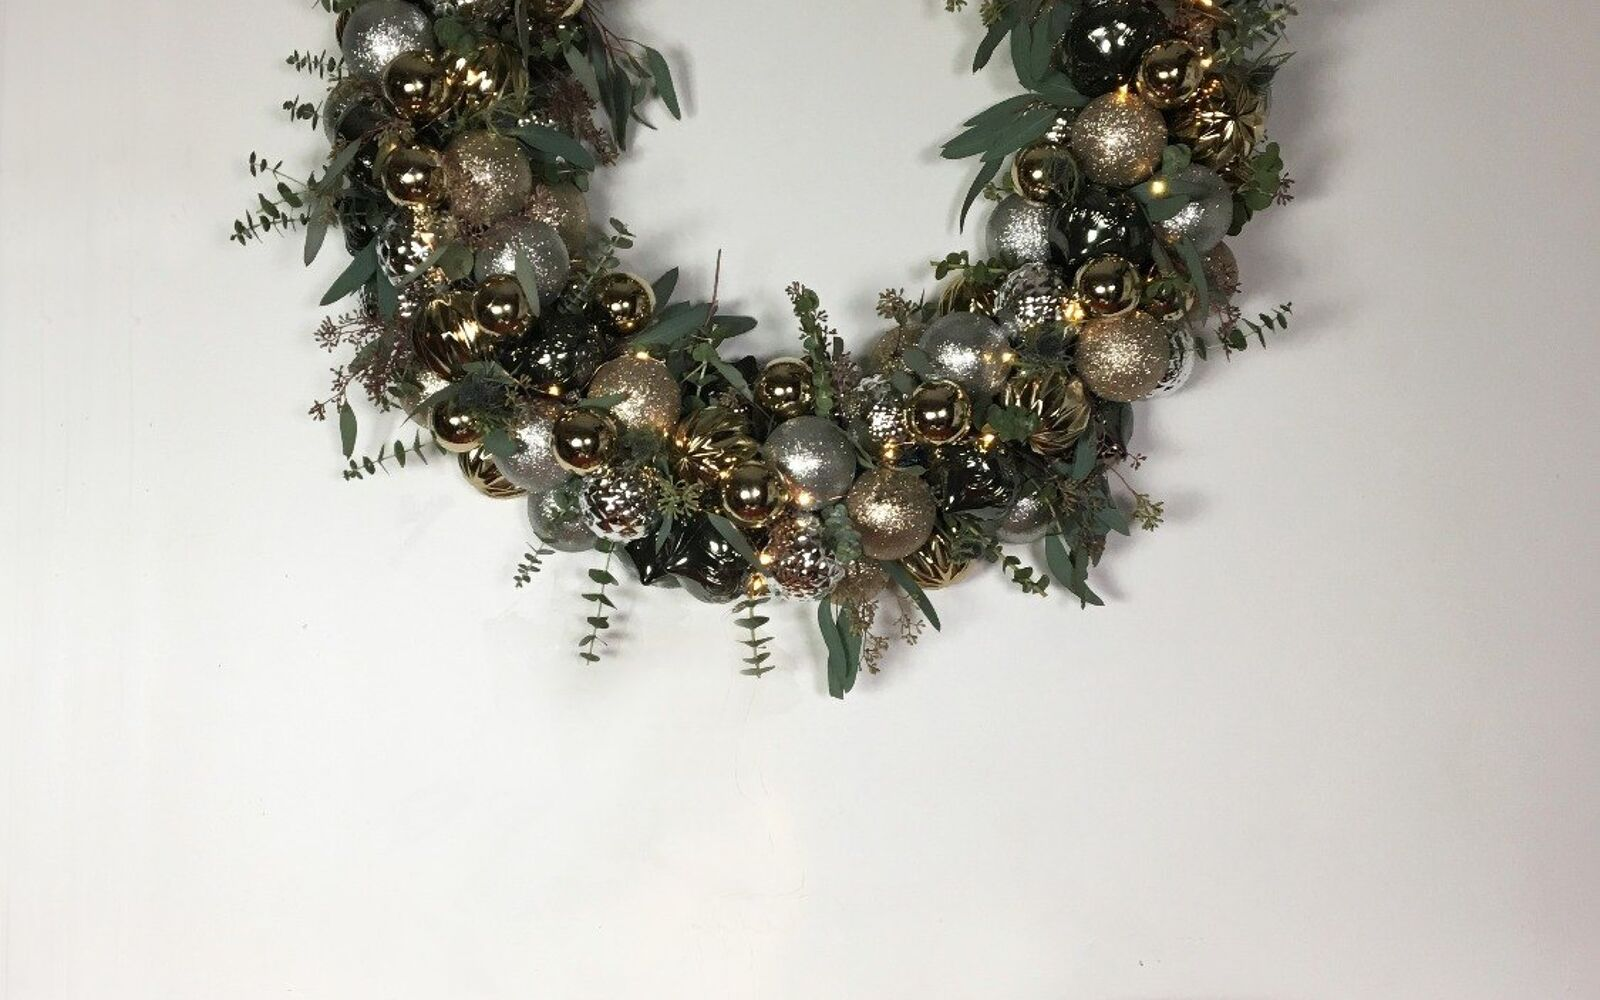 s 3 wreath ideas to brighten up your front door, Step 8 Hang it on your wall